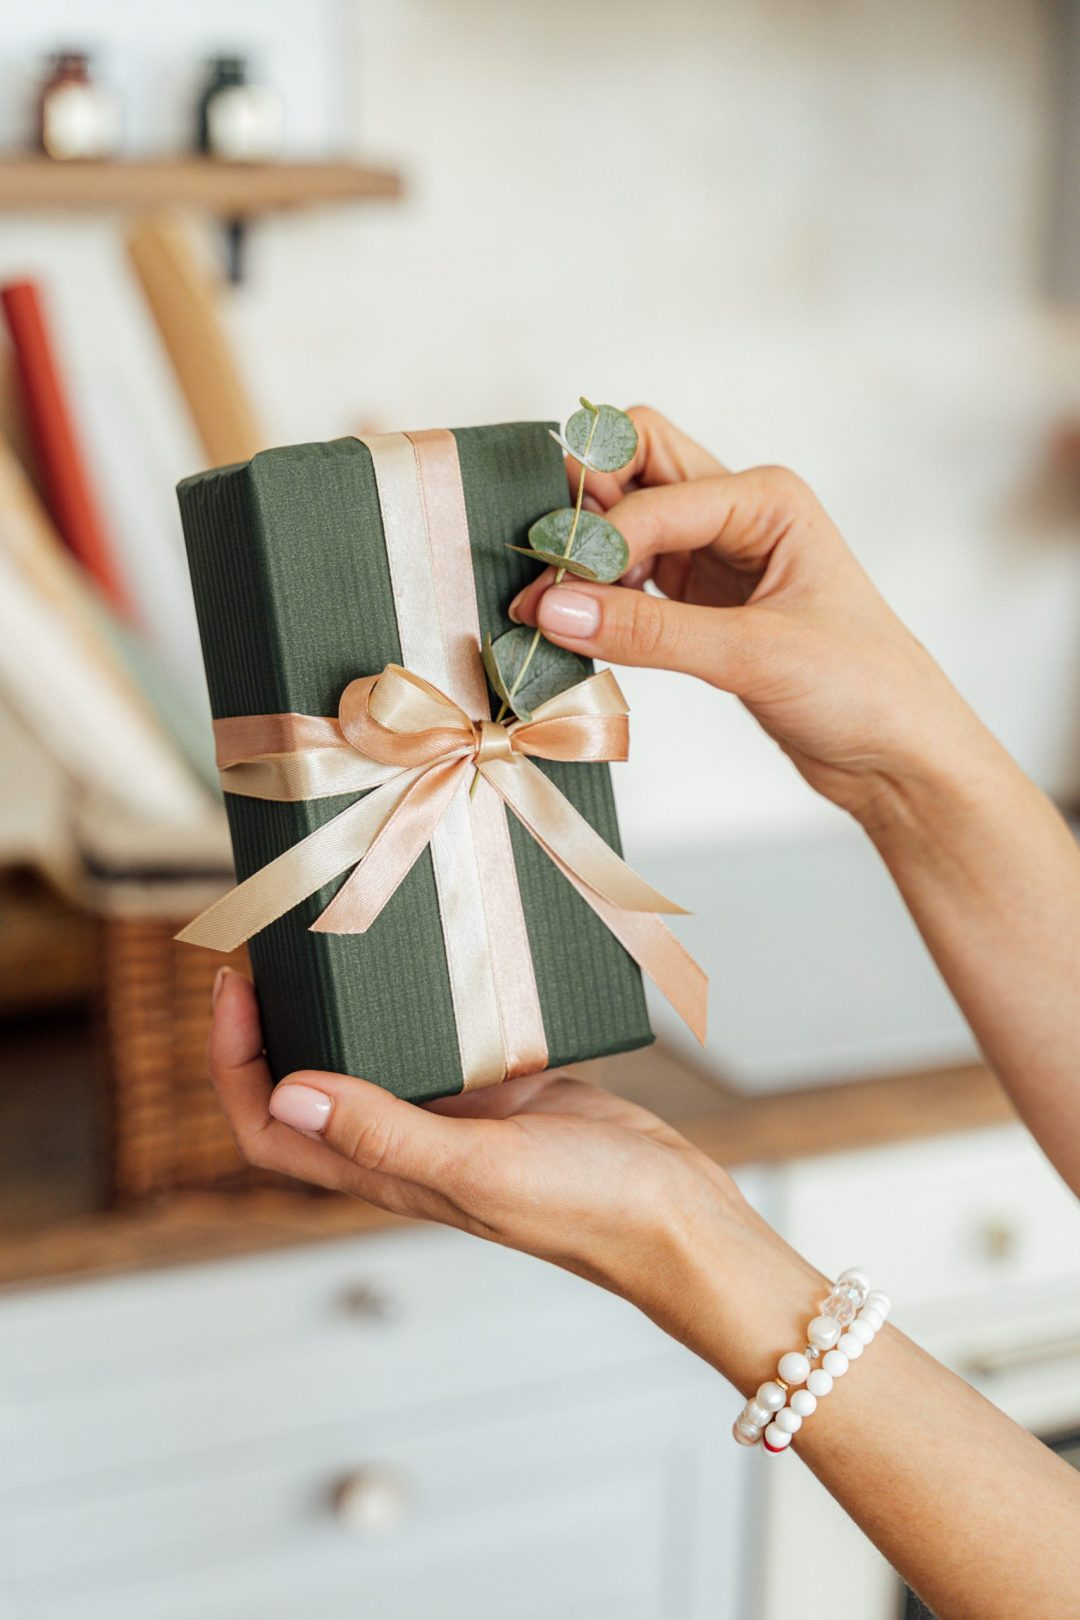 40 Thoughtful Gifts Every Girl Wants From Her Boyfriend